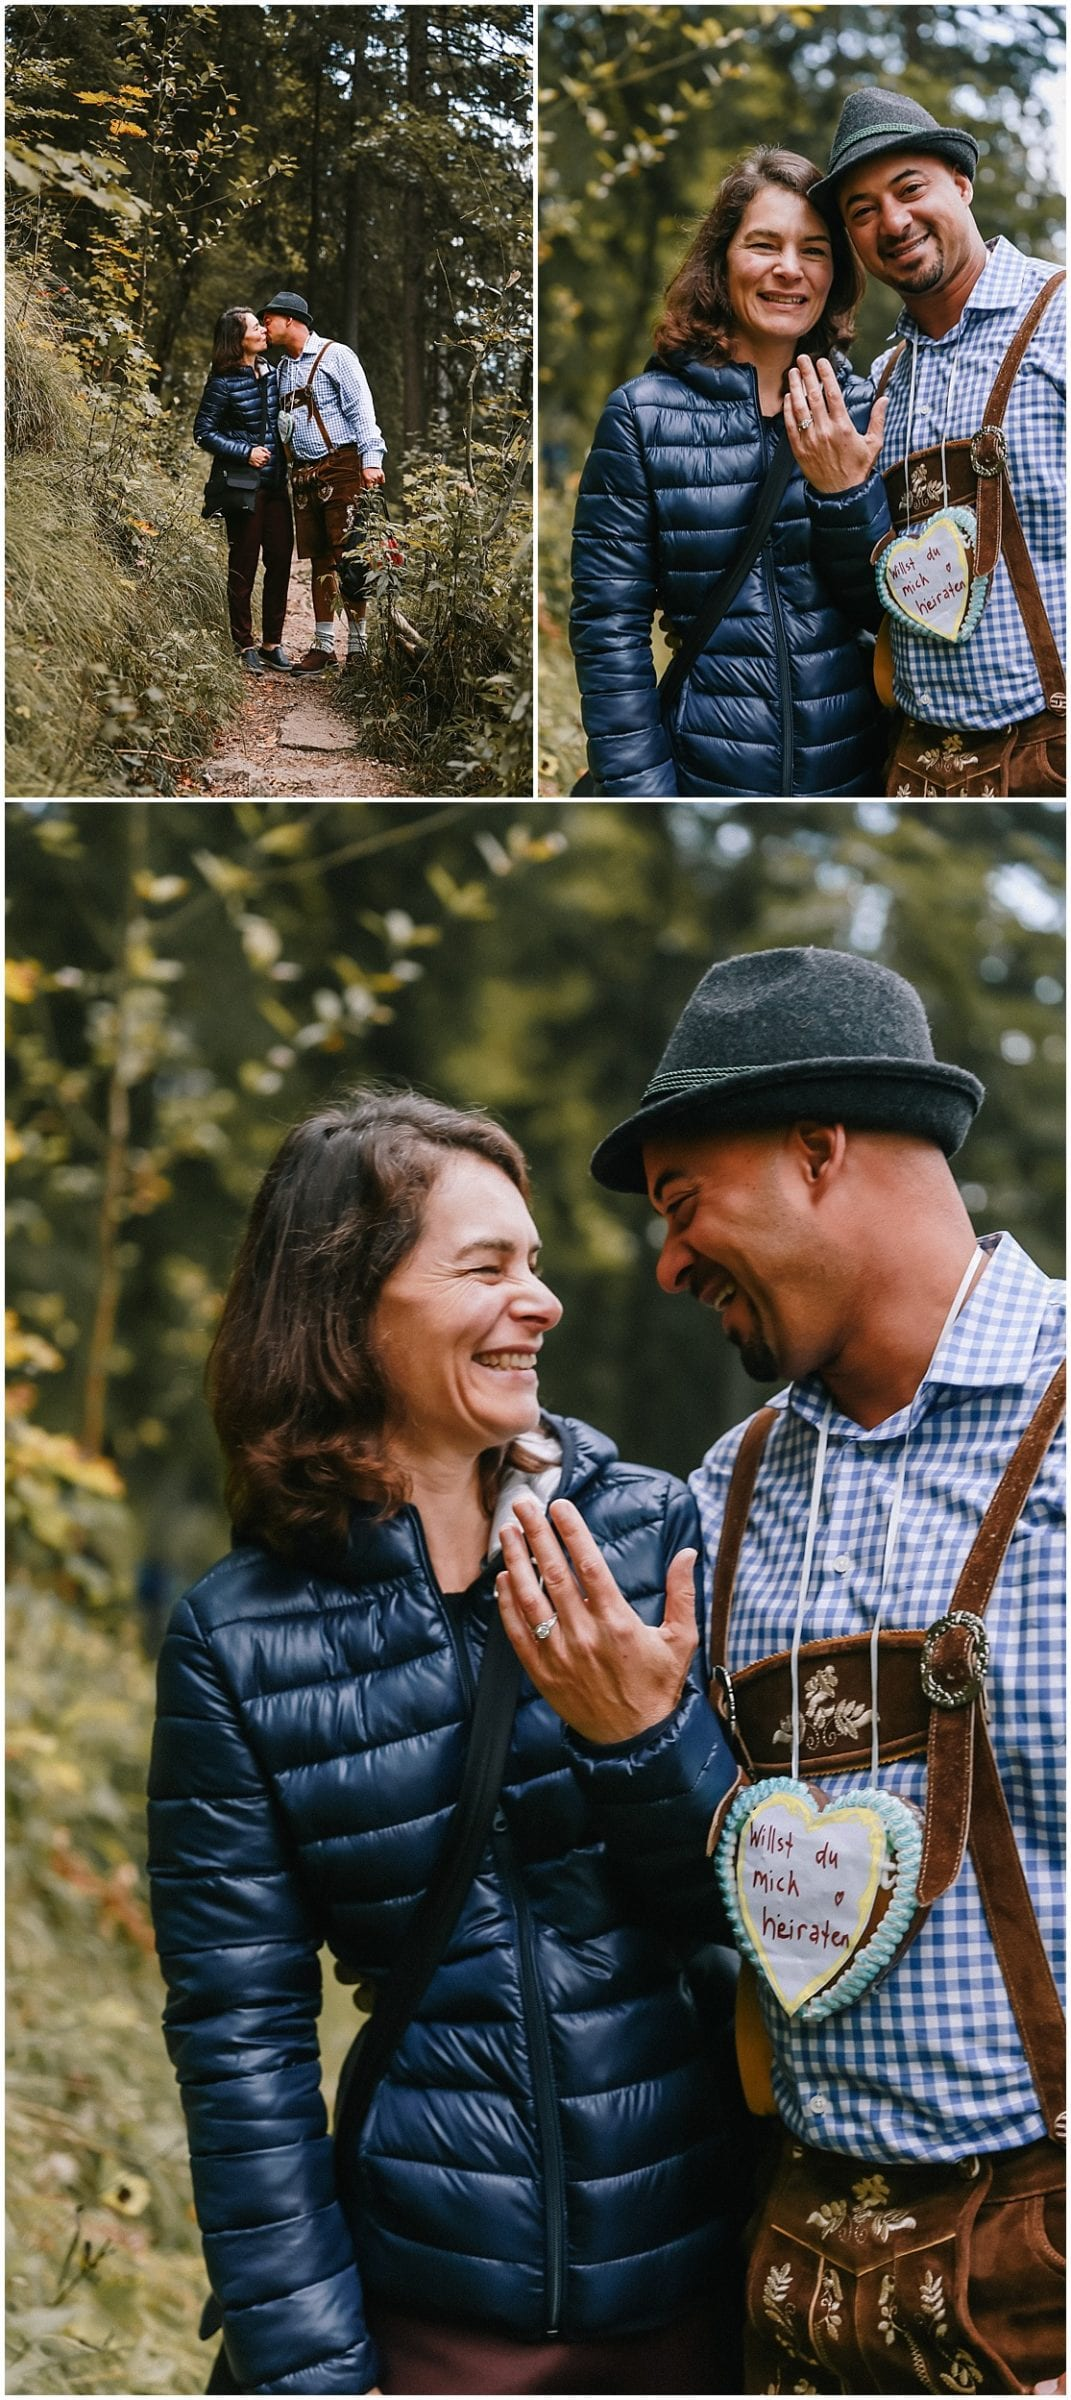 Neuschwanstein Castle Engagement Session and Proposal with Destination Portrait Photographer Helena Woods